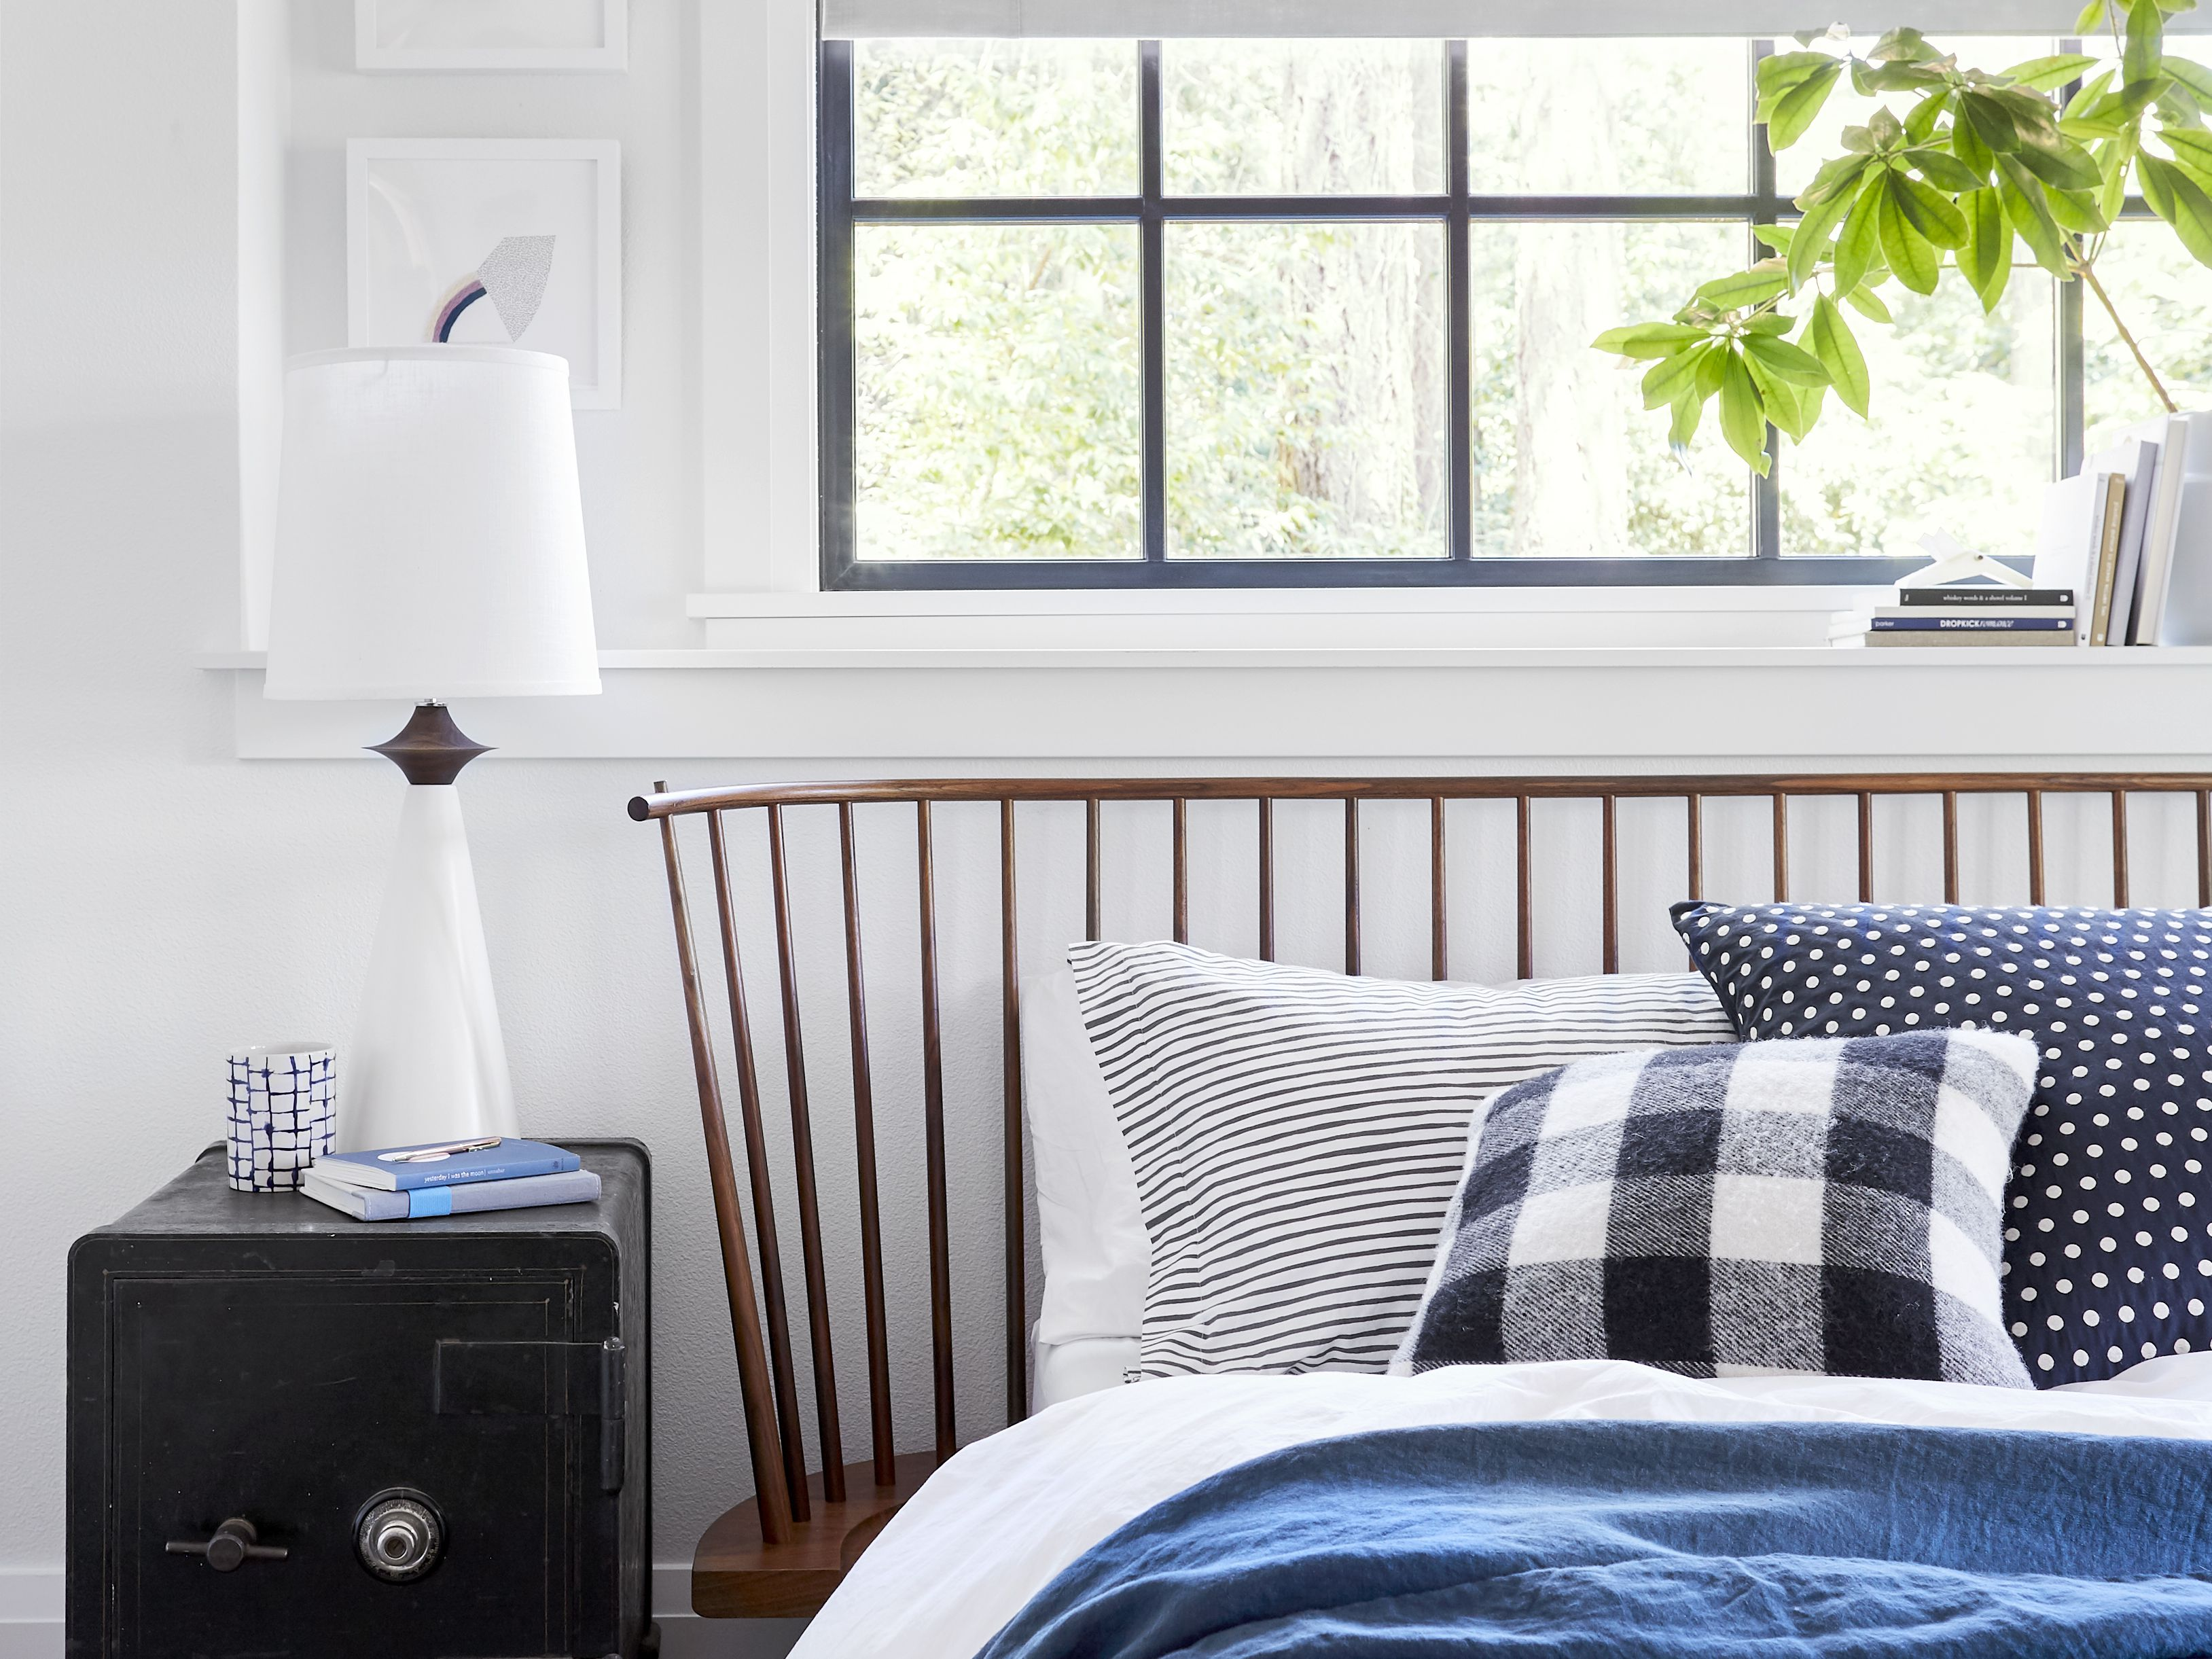 10 Ikea Bedroom Storage Ideas To Clear The Clutter And Improve Your Mental Health